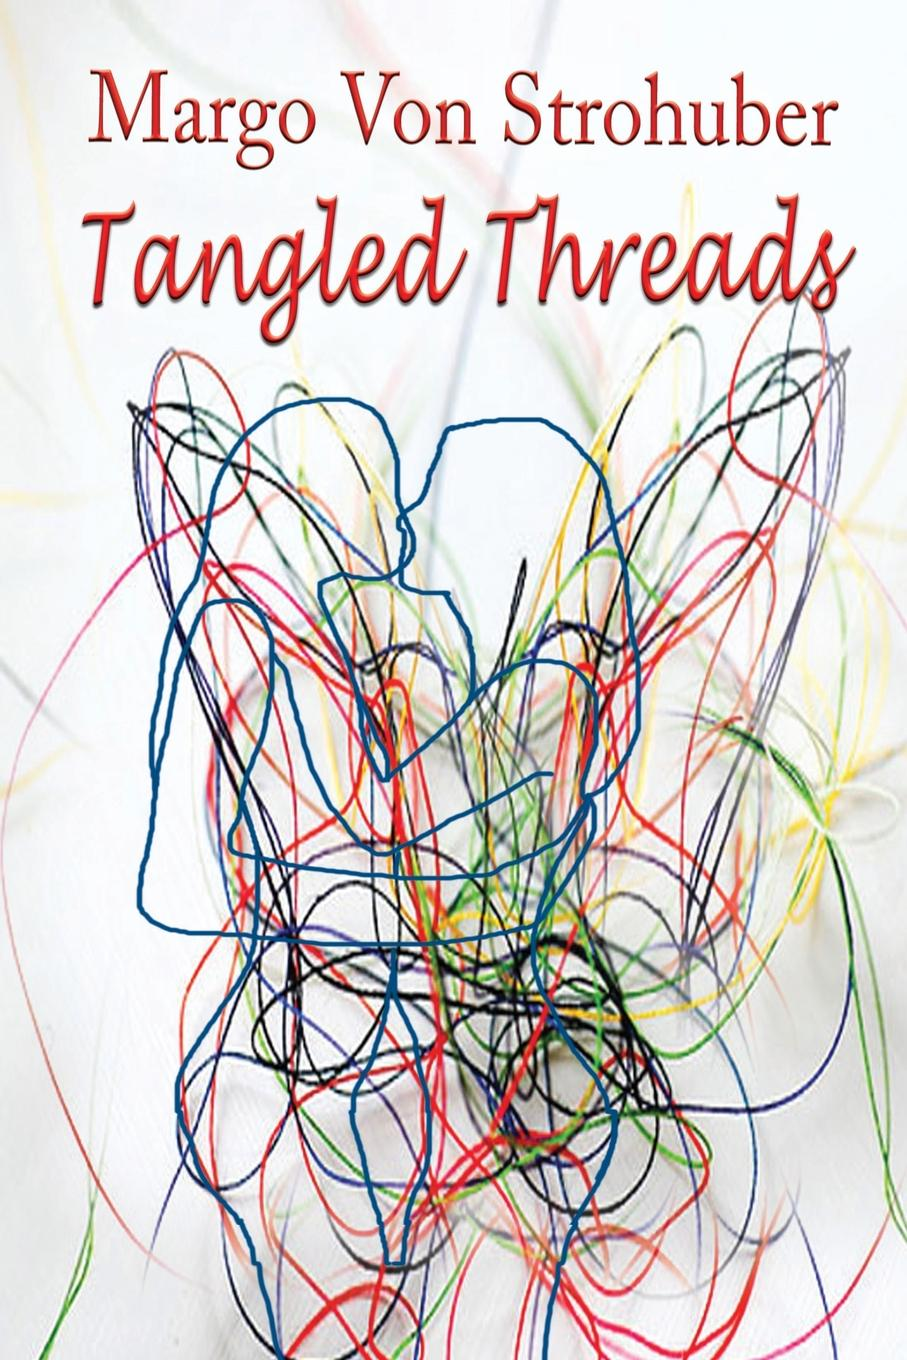 Margo Von Strohuber Tangled Threads julie hogan tangled sheets tangled lies